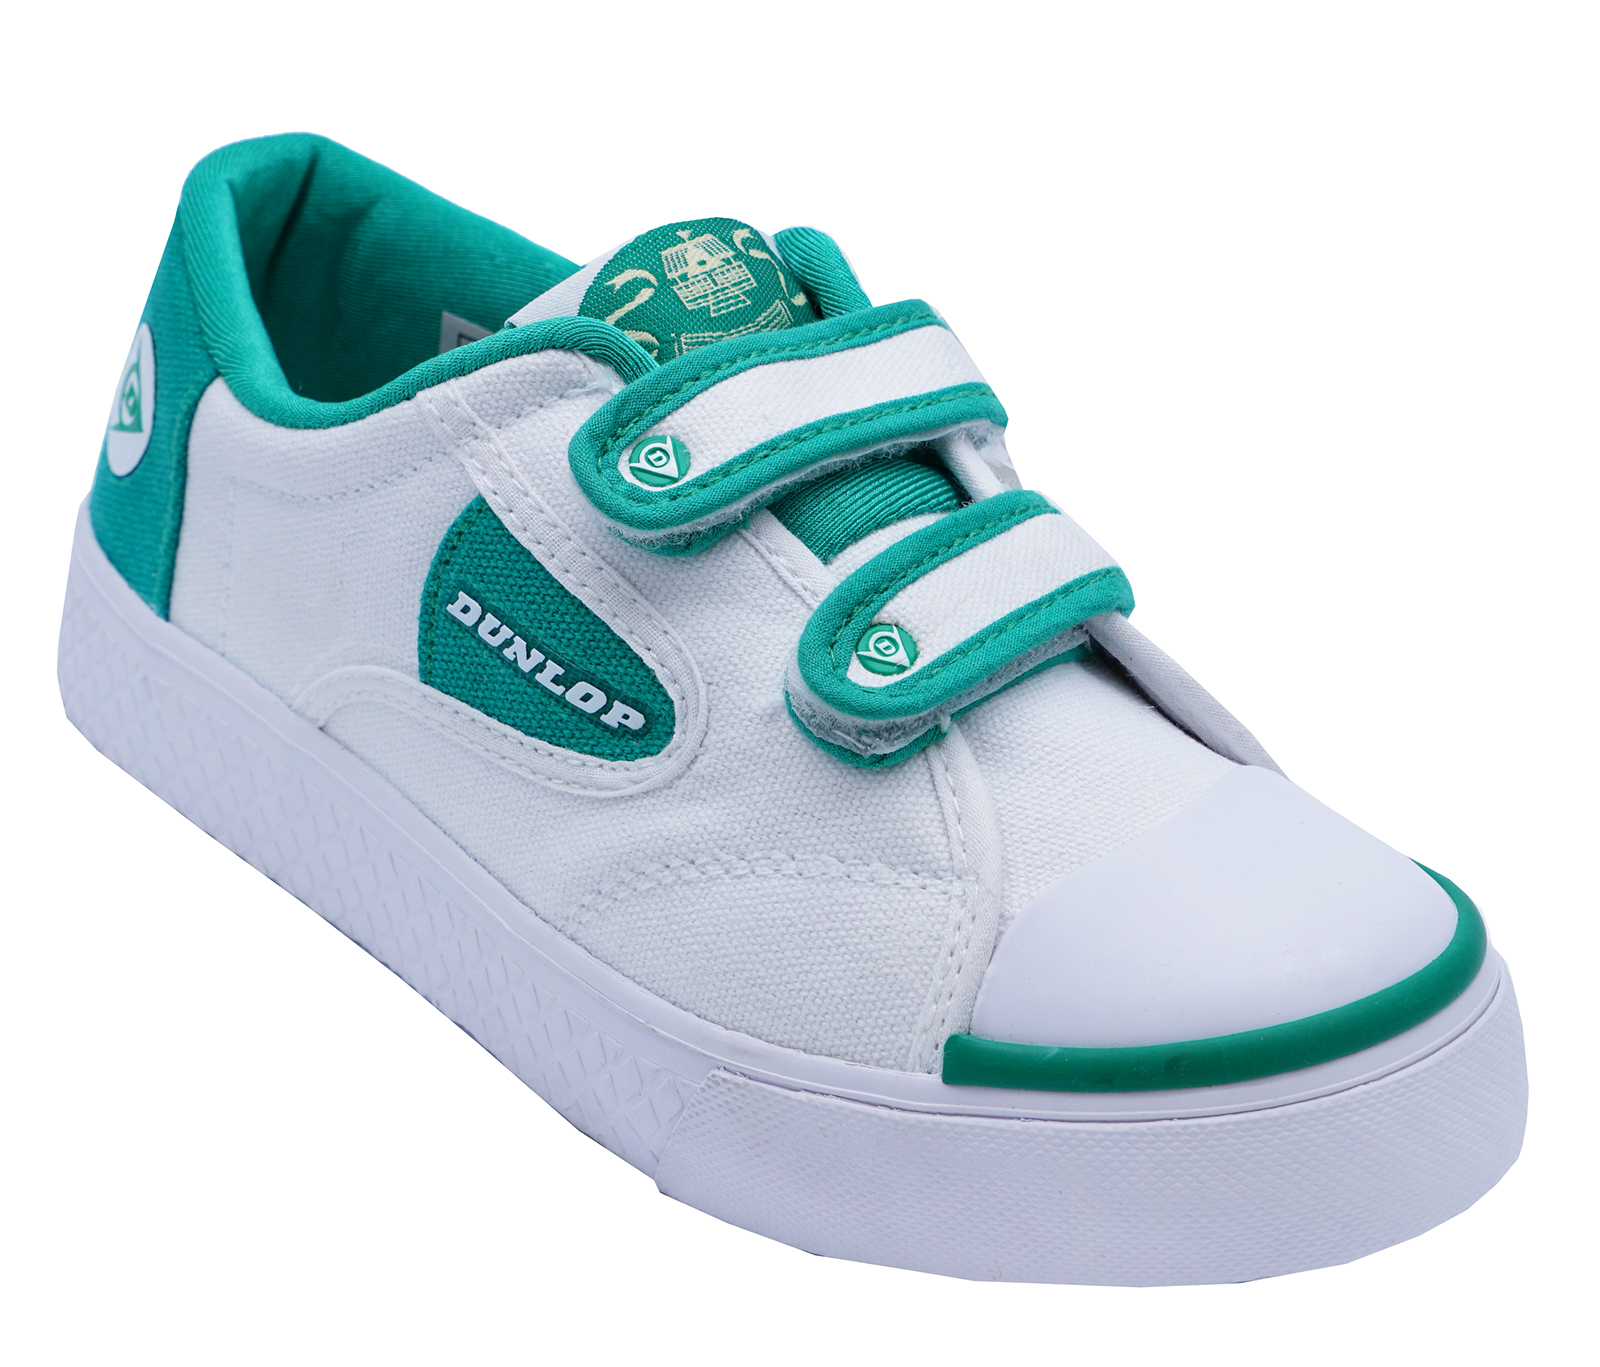 CHILDRENS WHITE SLIP ON TRAINERS P.E.SHOES